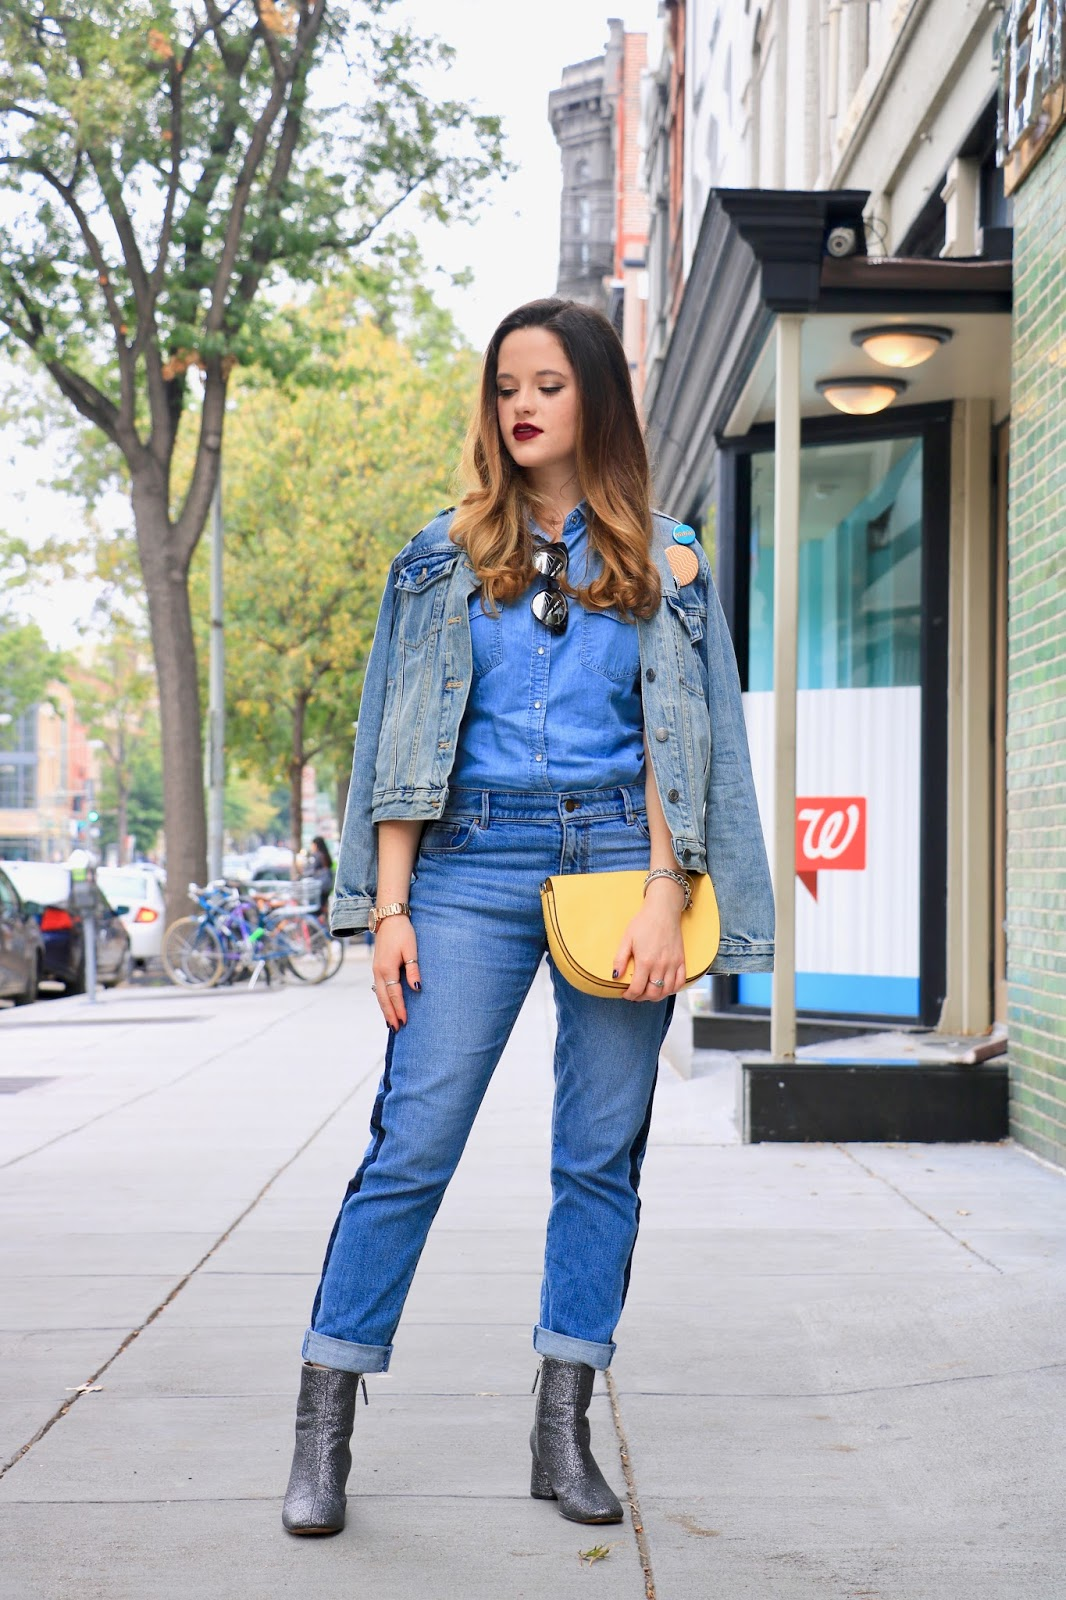 Nyc fashion blogger Kathleen Harper shows how to wear all denim